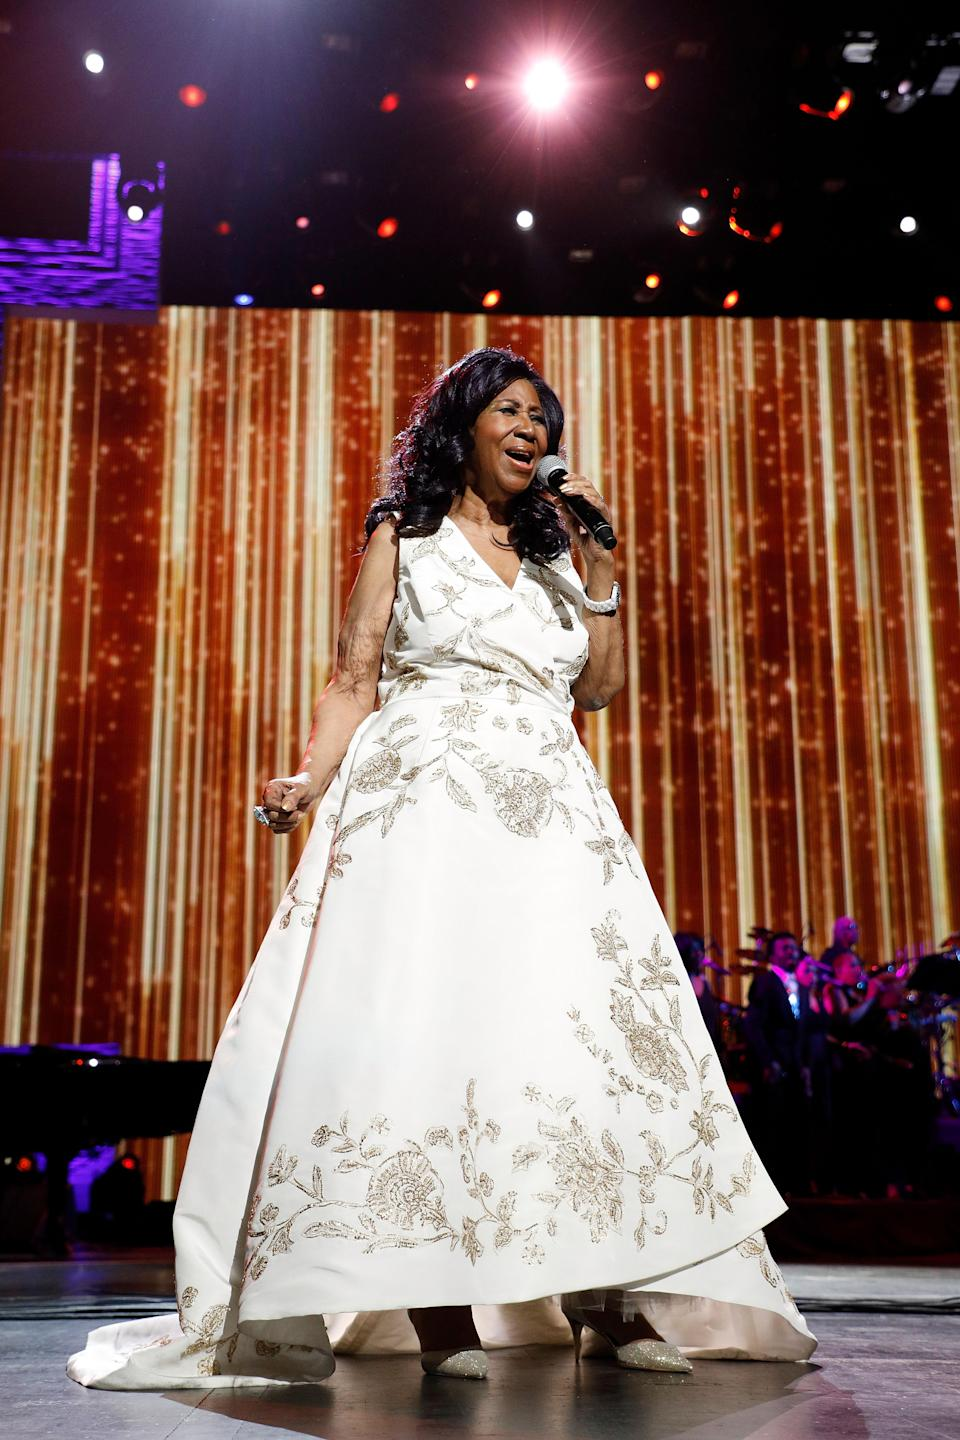 """<p>Aretha Franklin wearing a glamorous white and gold A-line gown while performing at the 2017 Tribeca Film Festival Opening Gala premiere of """"Clive Davis: The Soundtrack of Our Lives."""" (Photo by Taylor Hill/Getty Images) </p>"""